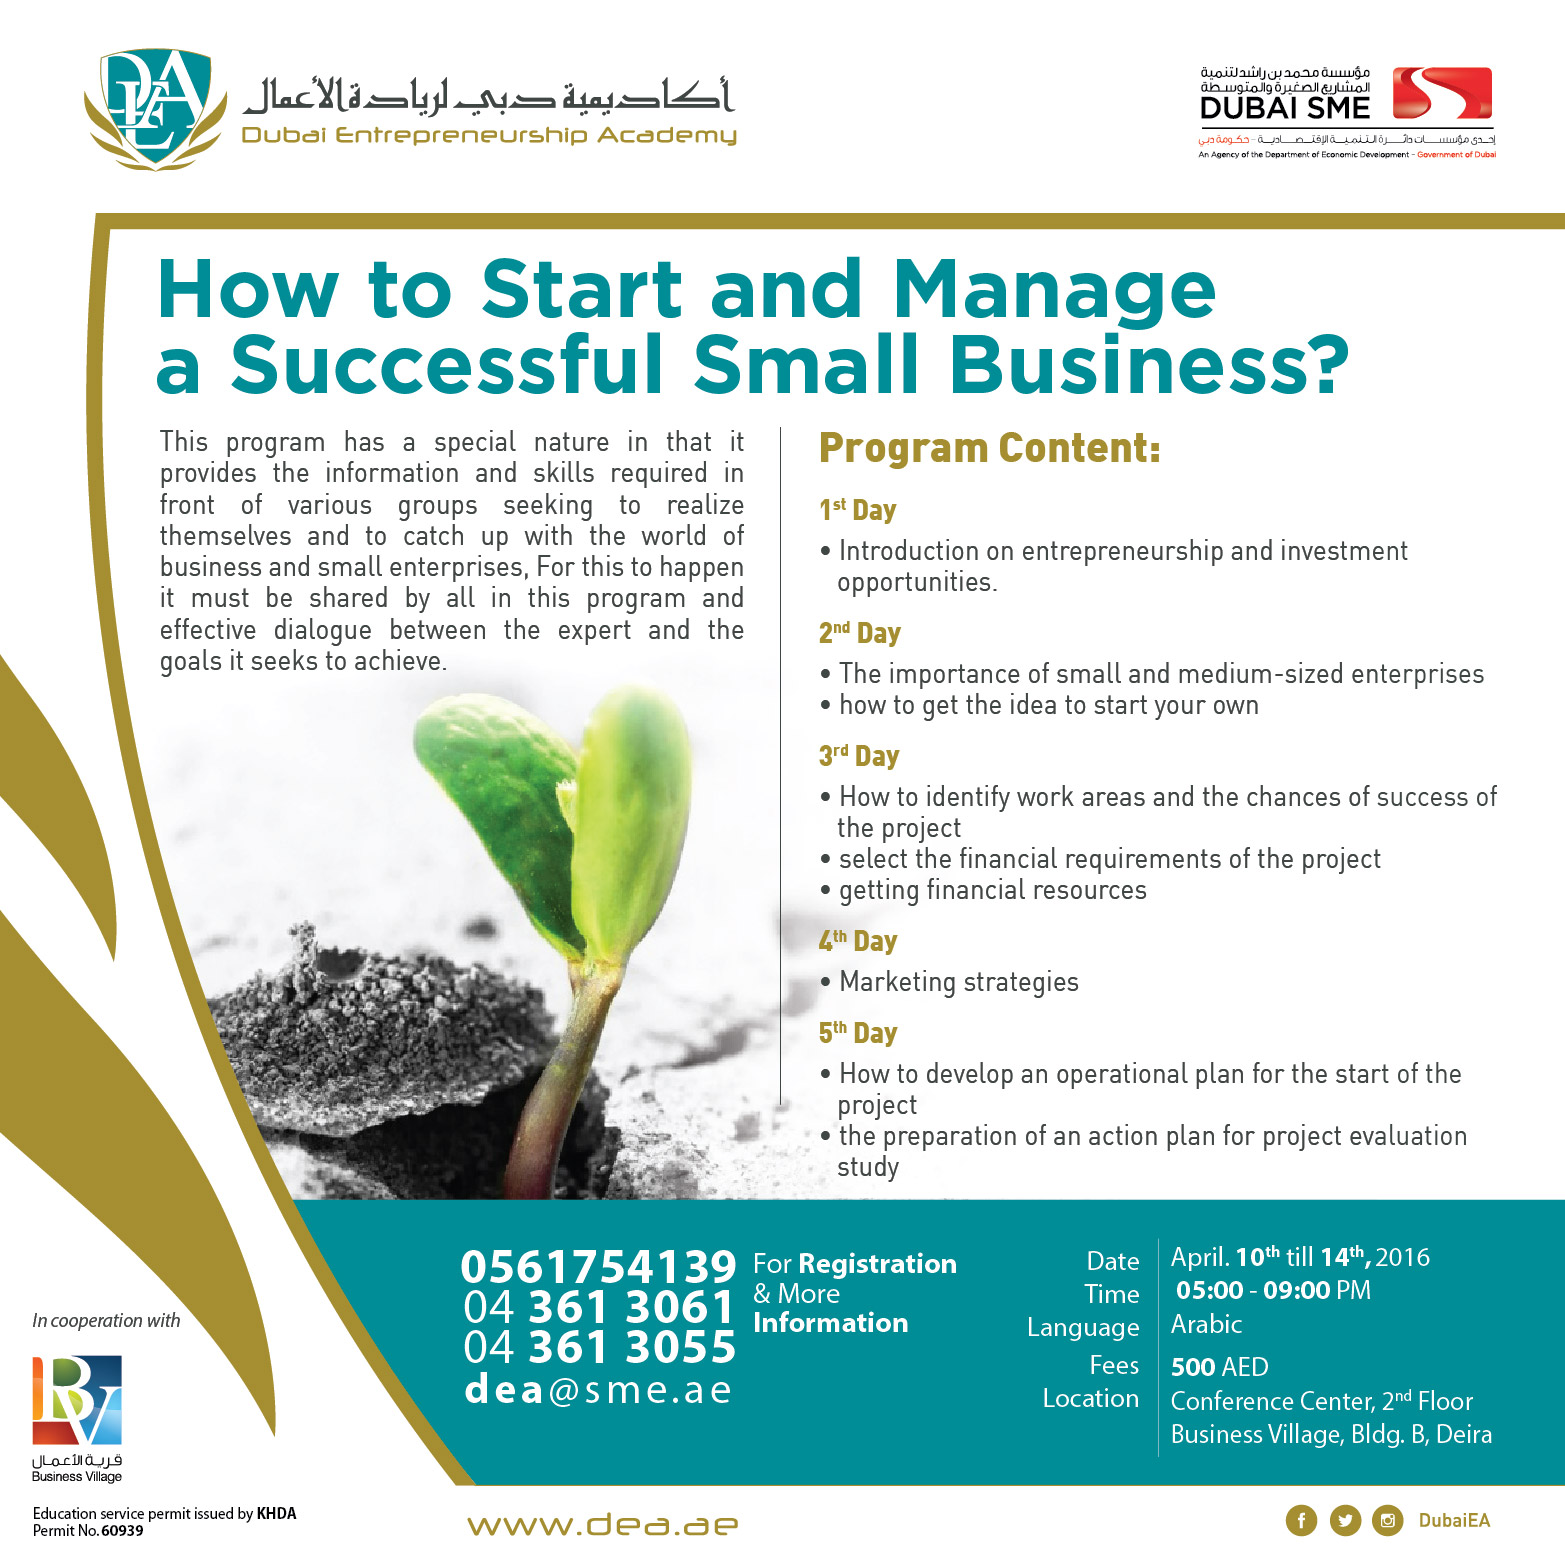 How to start and manage a successful small business?